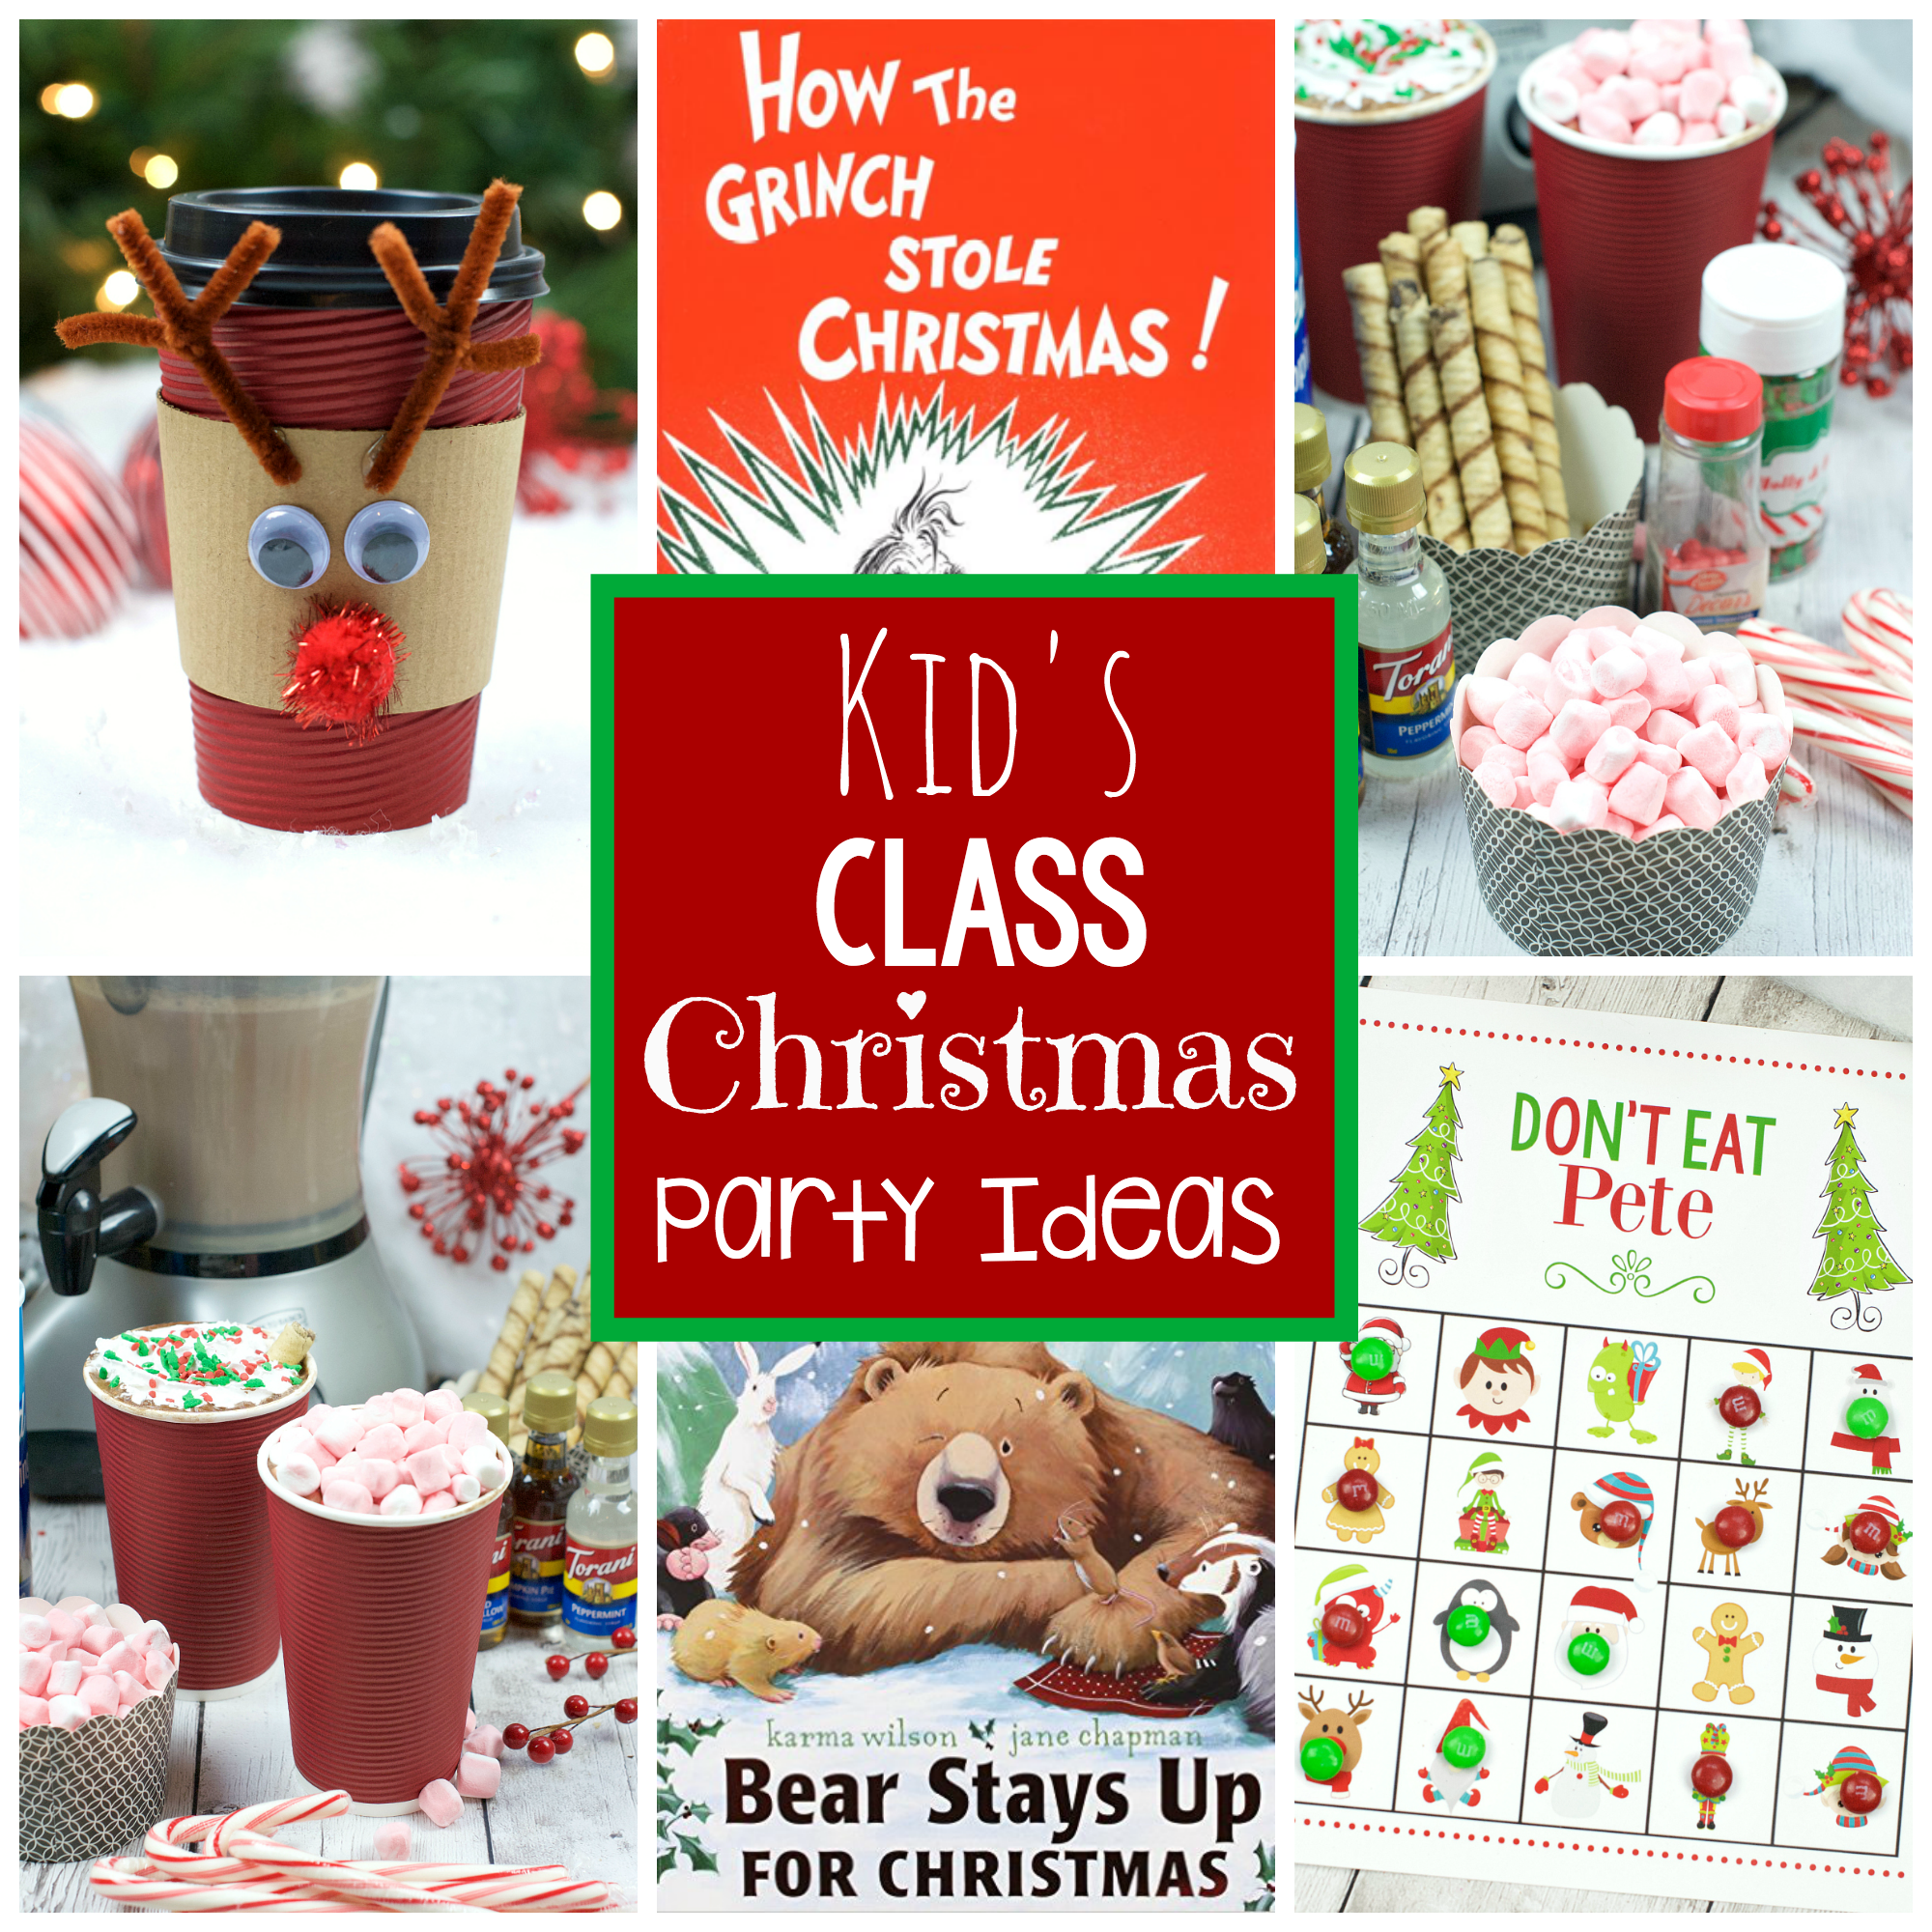 Christmas Holiday Party: Kid's Christmas Class Party Ideas